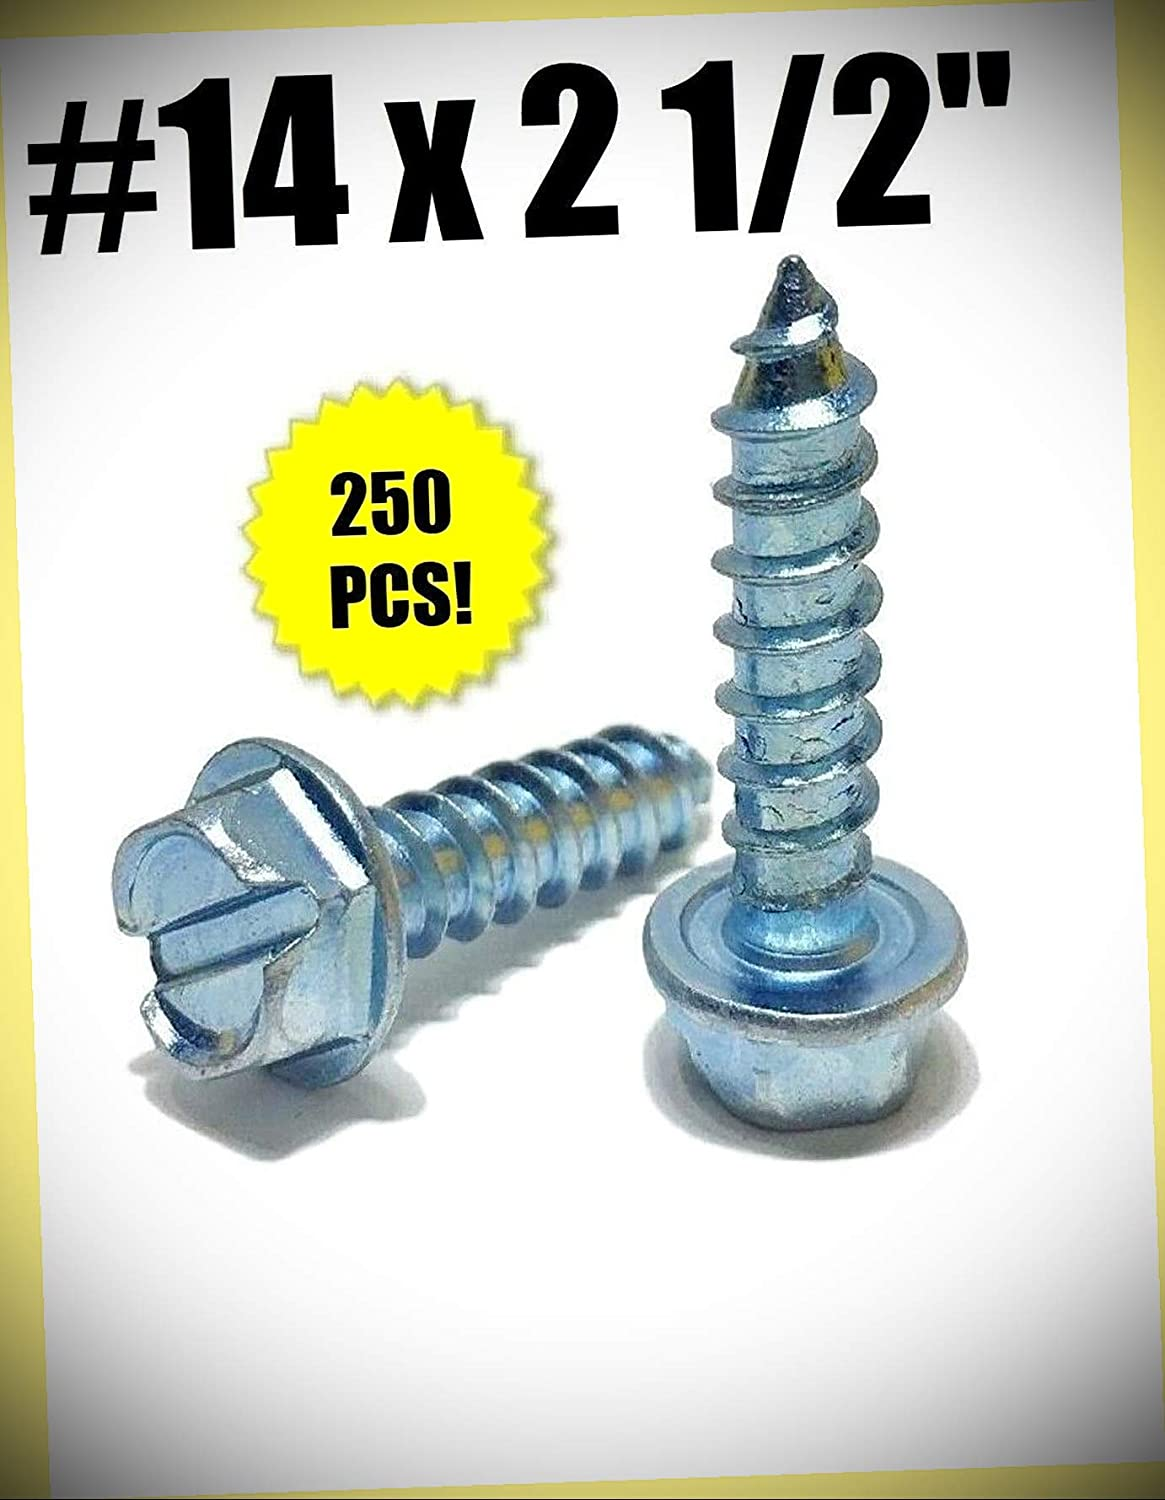 pcs #14 x 2 1//2 Hex Washer Head Slotted Sheet Metal Screw Zinc Plated Set #RD-2751FST Warranity by Pr-Mch Package of 250